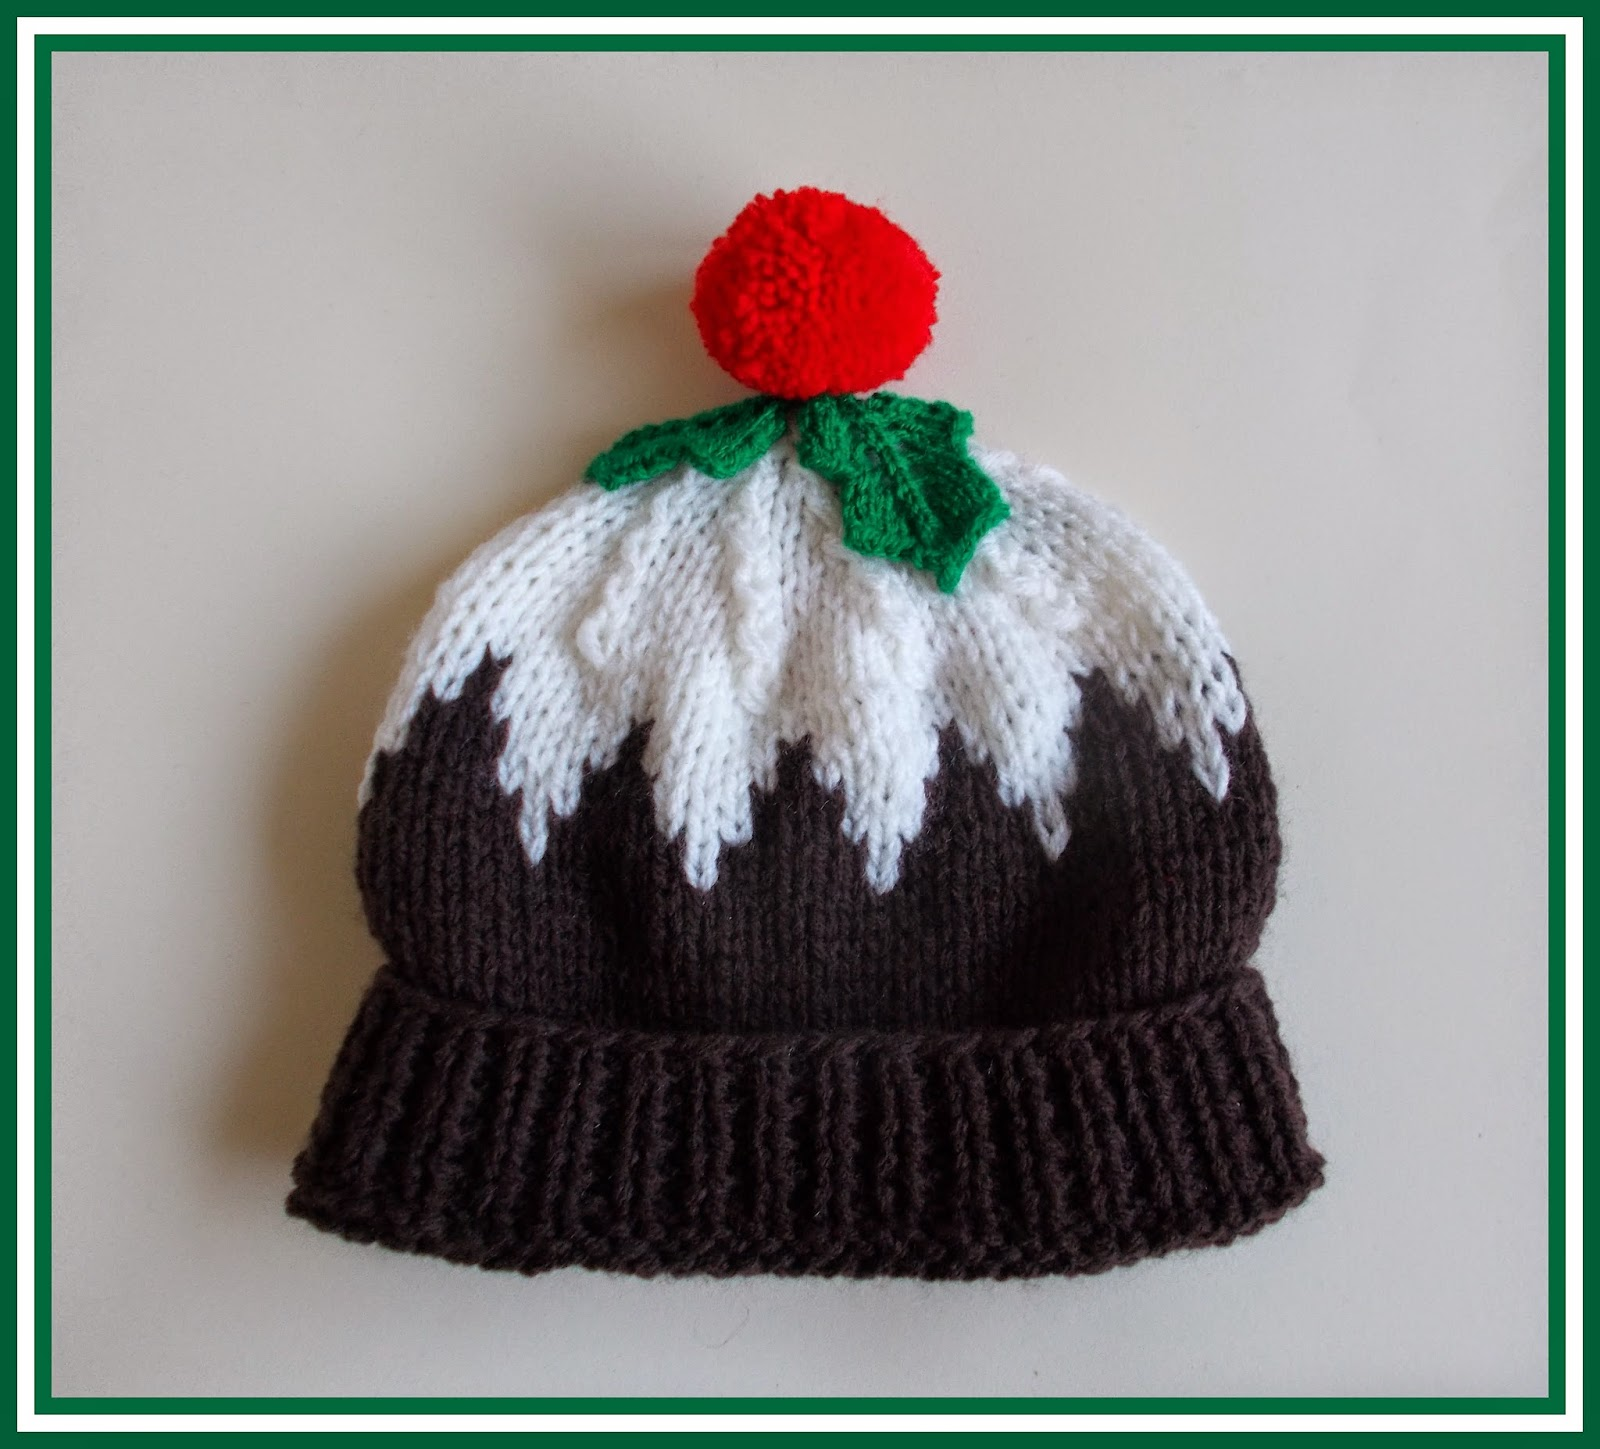 Knitting Pattern For A Christmas Pudding : mariannas lazy daisy days: Christmas Pudding Hat